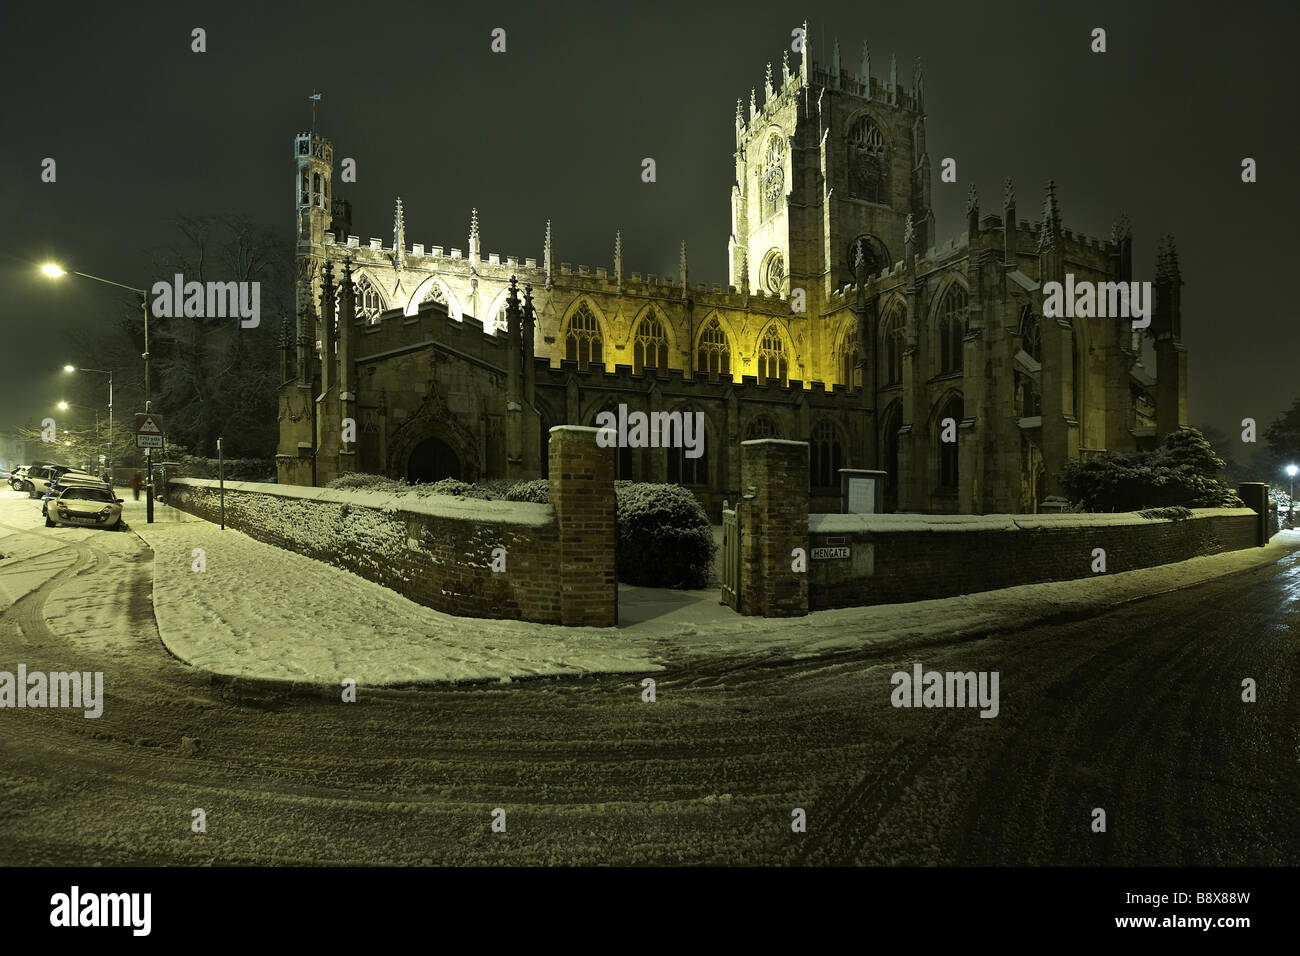 St Mary s church carpeted in snow Beverley East Yorkshire UK - Stock Image